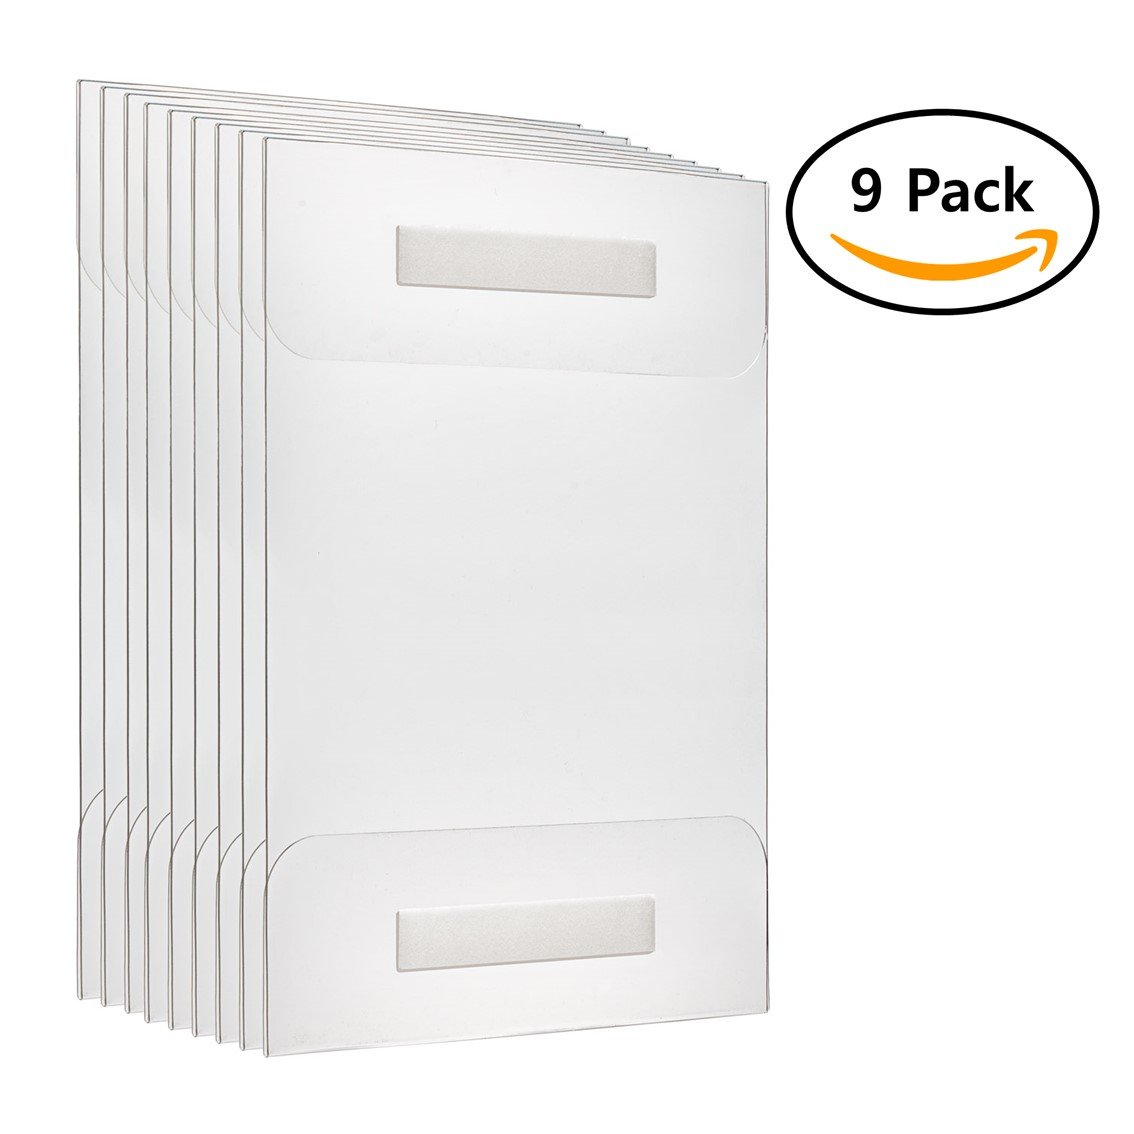 Fortunovo Acrylic sign holder 8.5 x 11 | Wall mount | 9pcs Pack | Clear, putty, adhesive, easy hang frame | For file, engraver, document, brochure, sheet, folder, clipboard, whiteboard, folder |